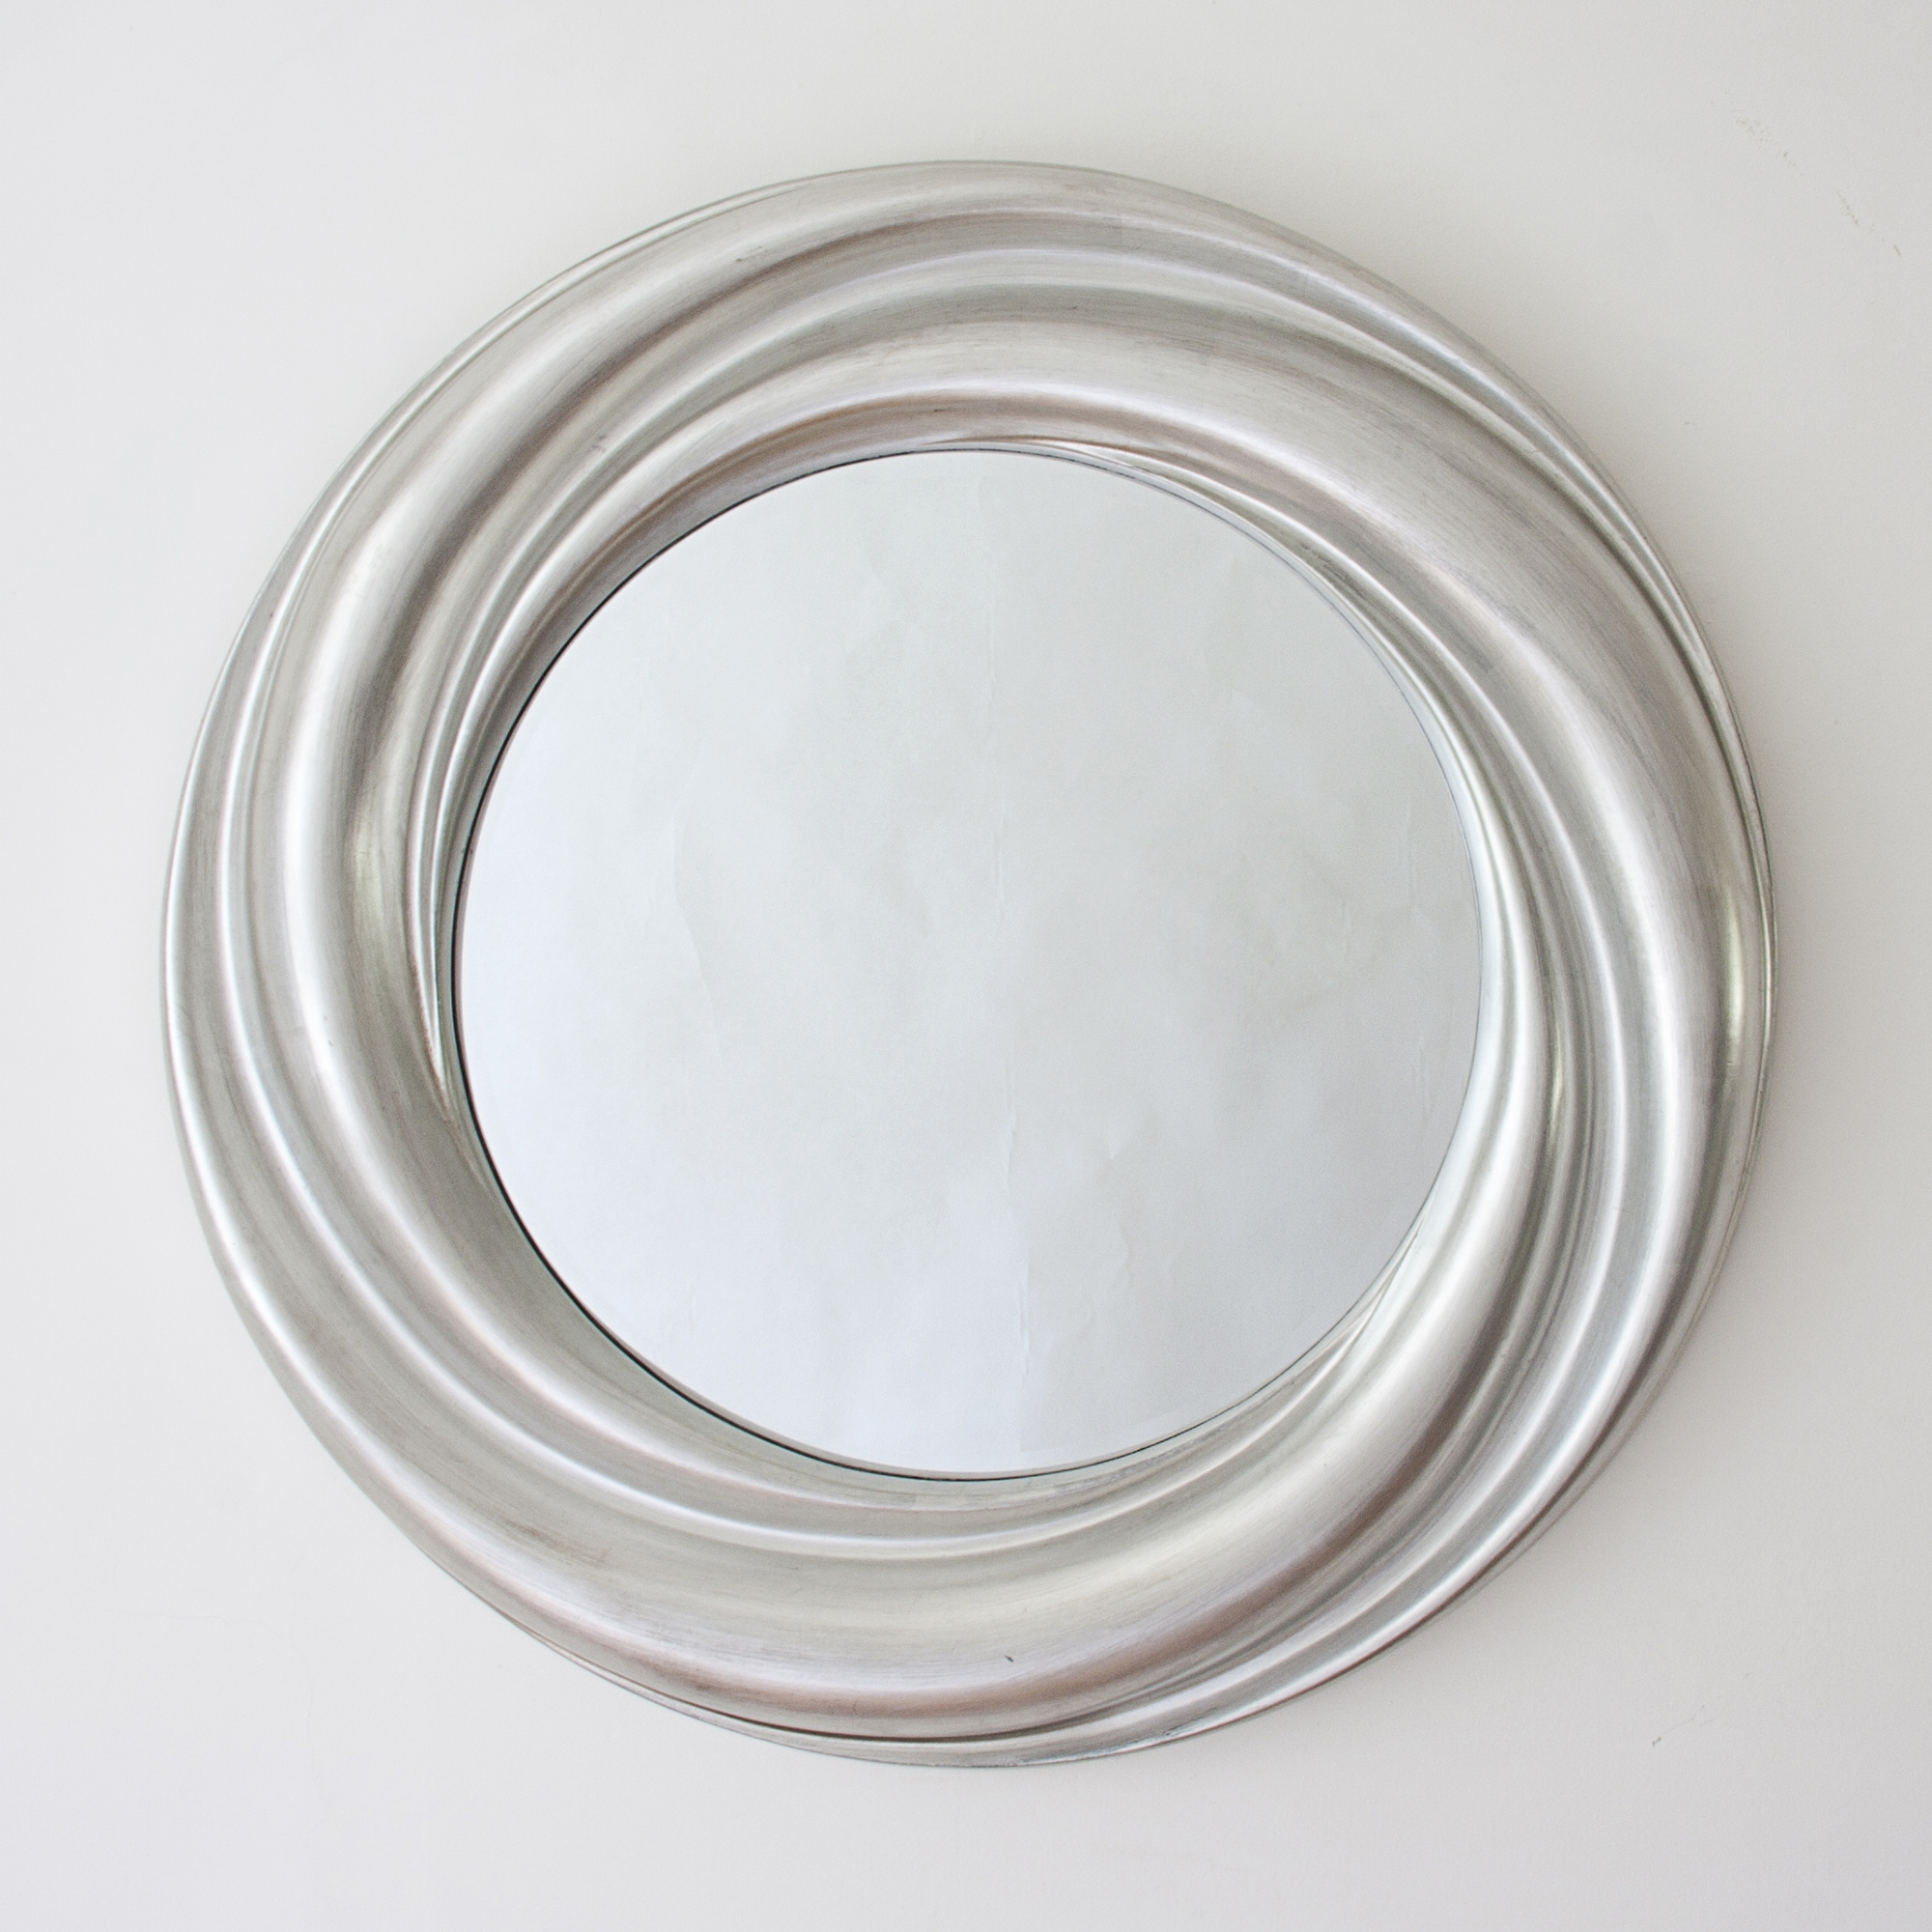 Designer Round Mirrors Howard Elliott Raymus Round Mirror In With Regard To Contemporary Round Mirrors (Image 6 of 15)